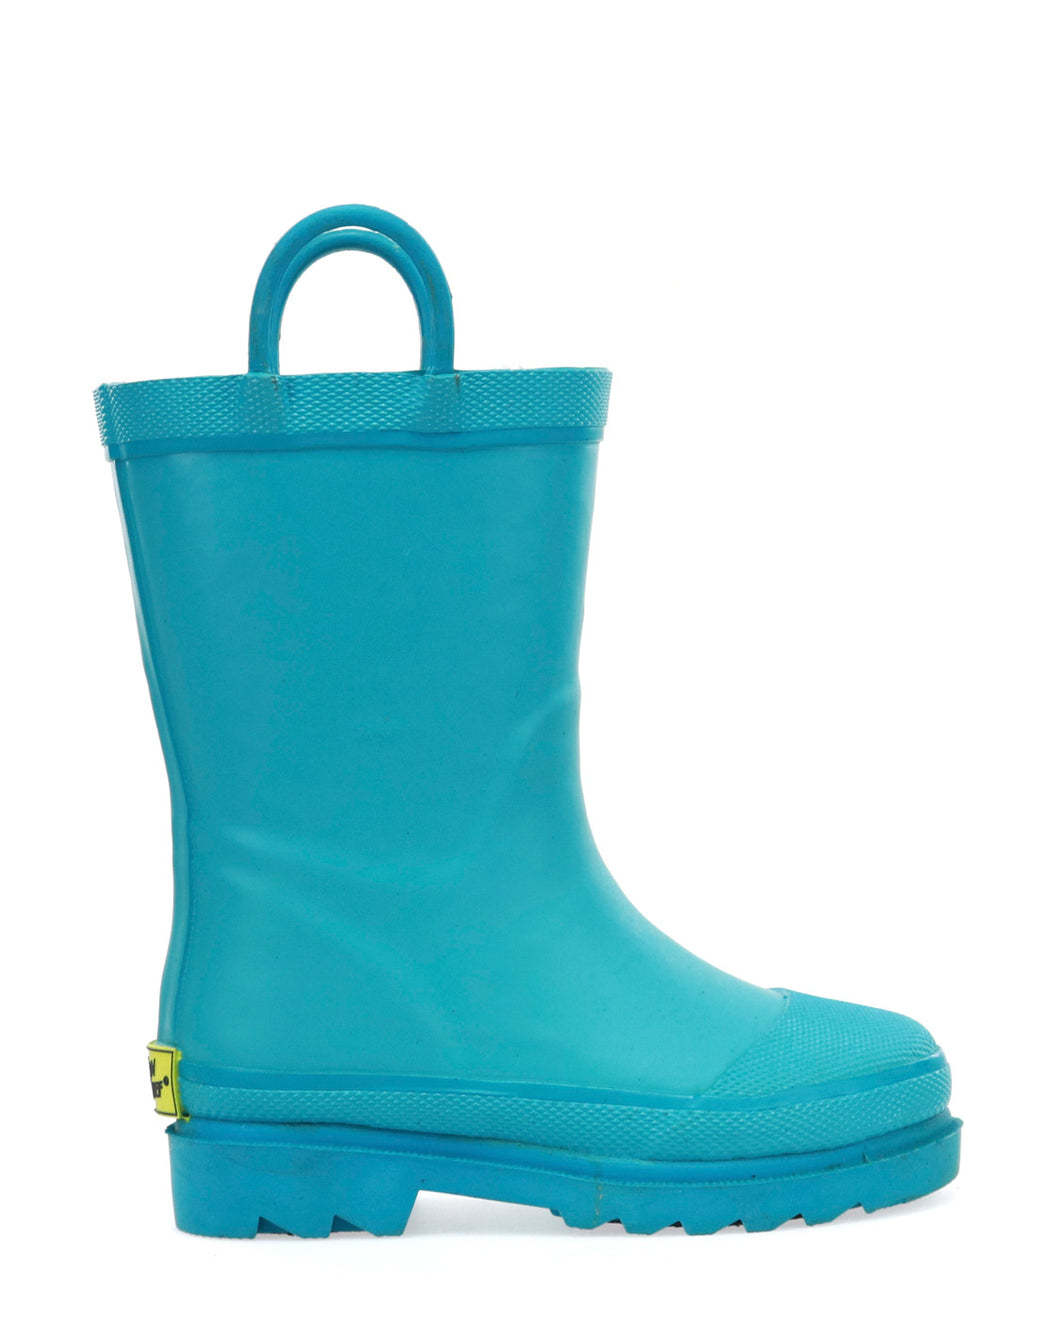 Kids Winterchief Rain Boot - Teal